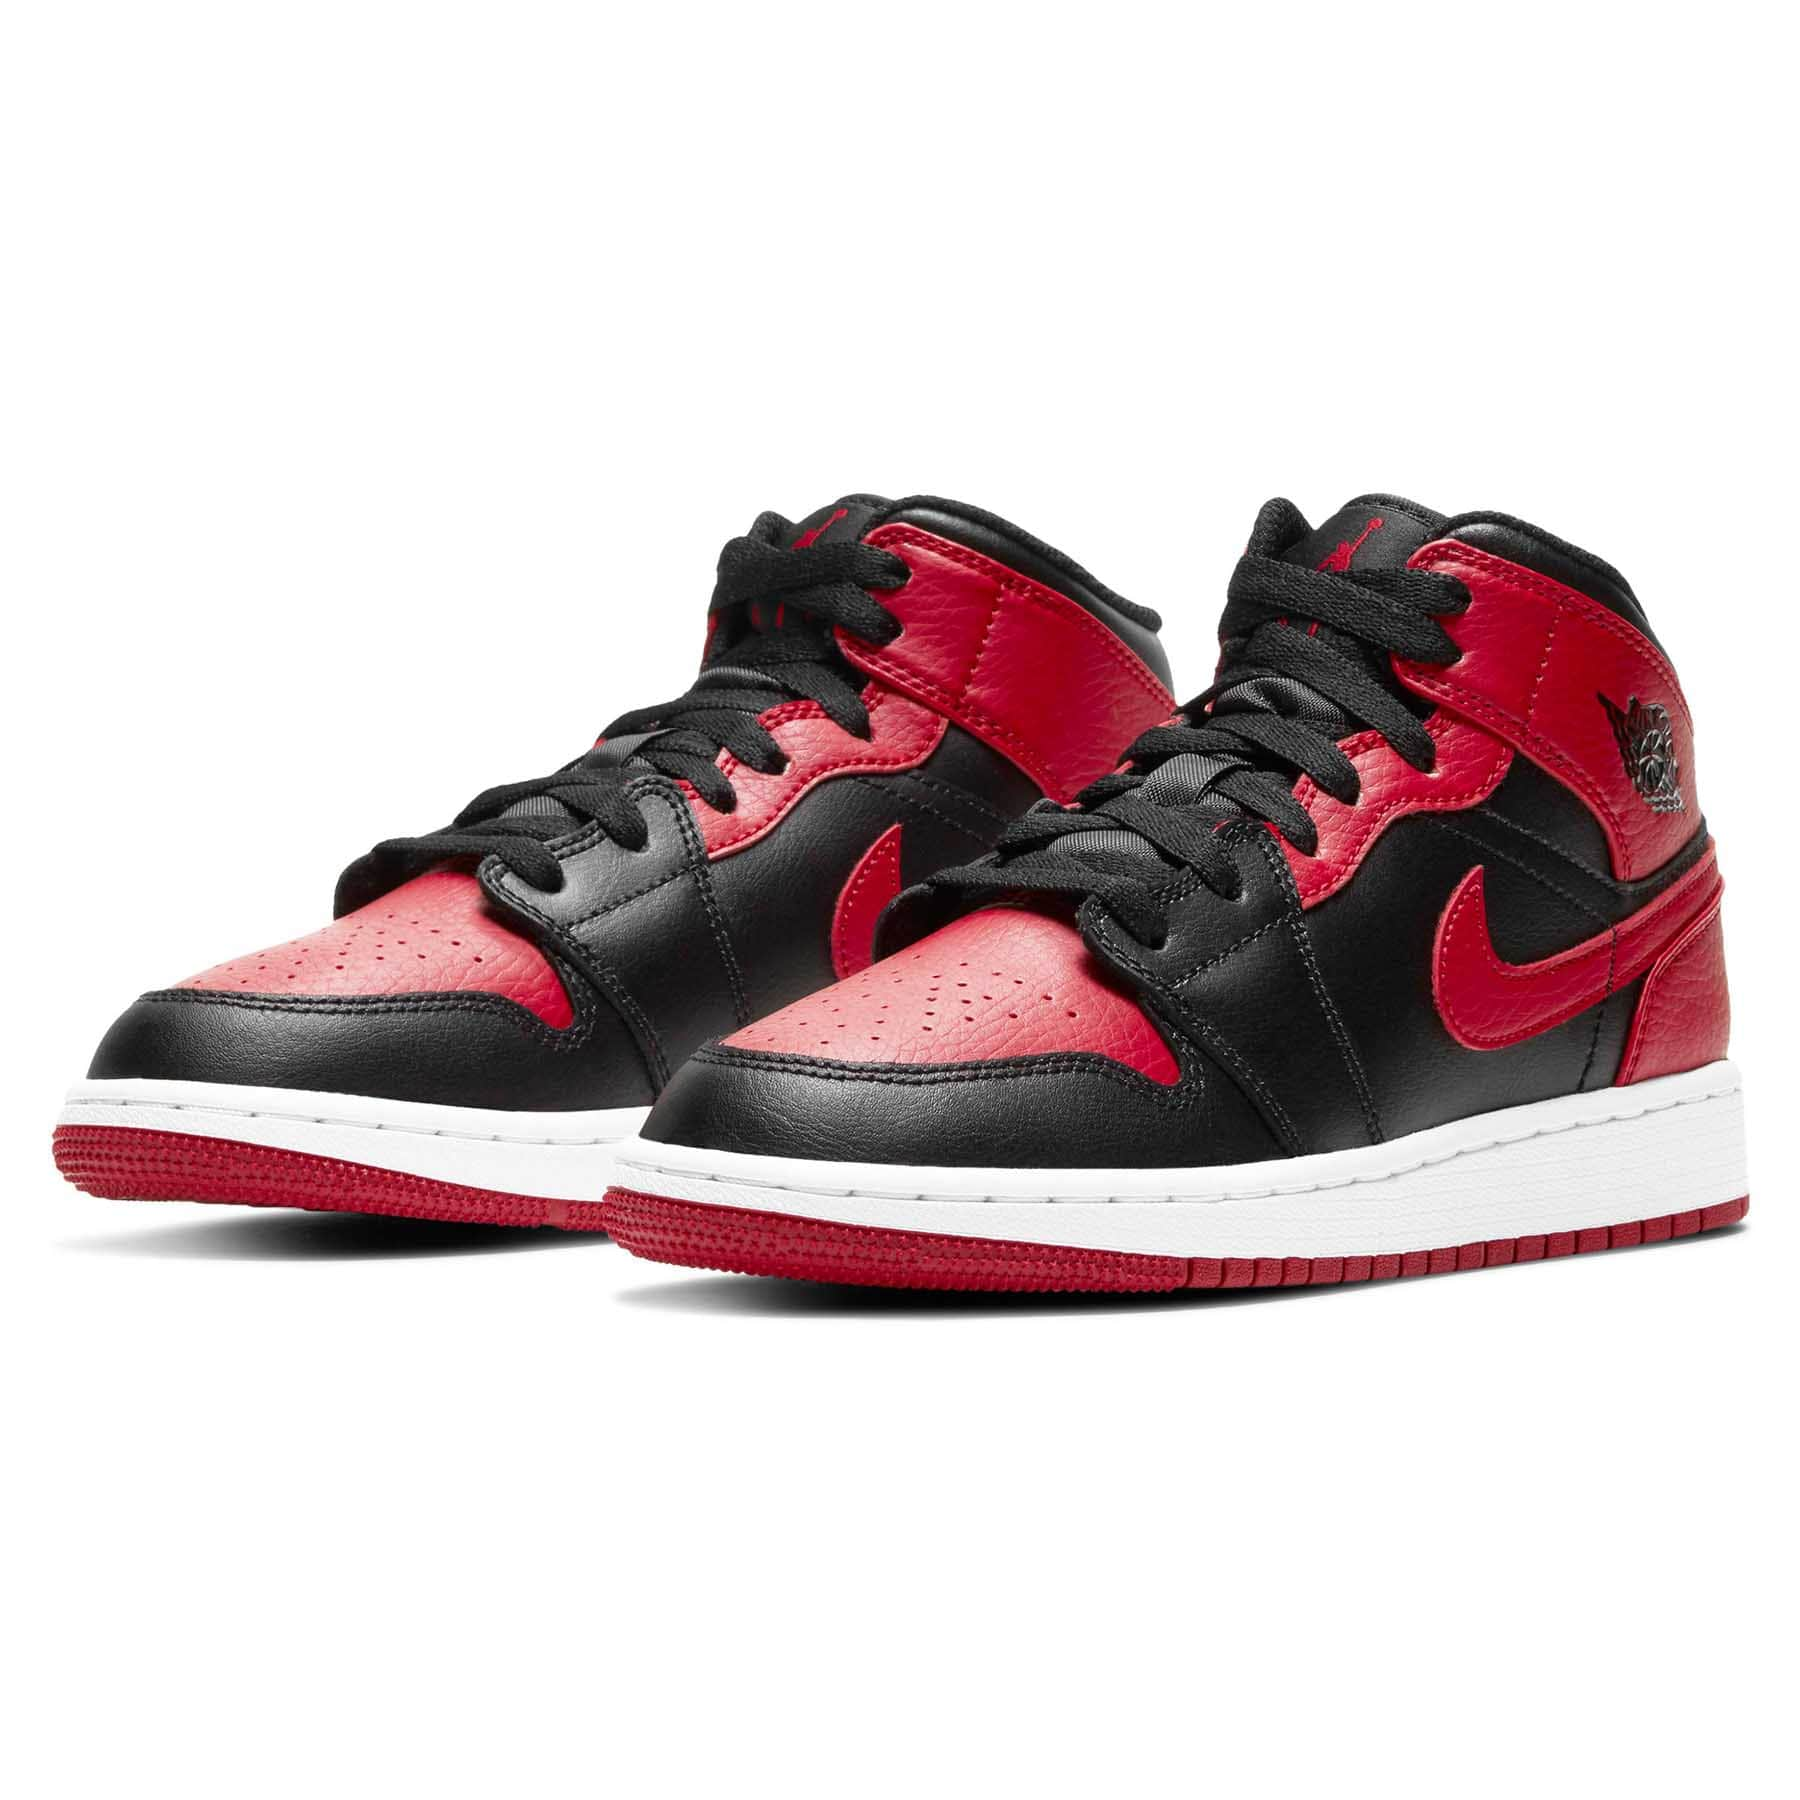 Air Jordan 1 Mid GS 'Banned' - Kick Game